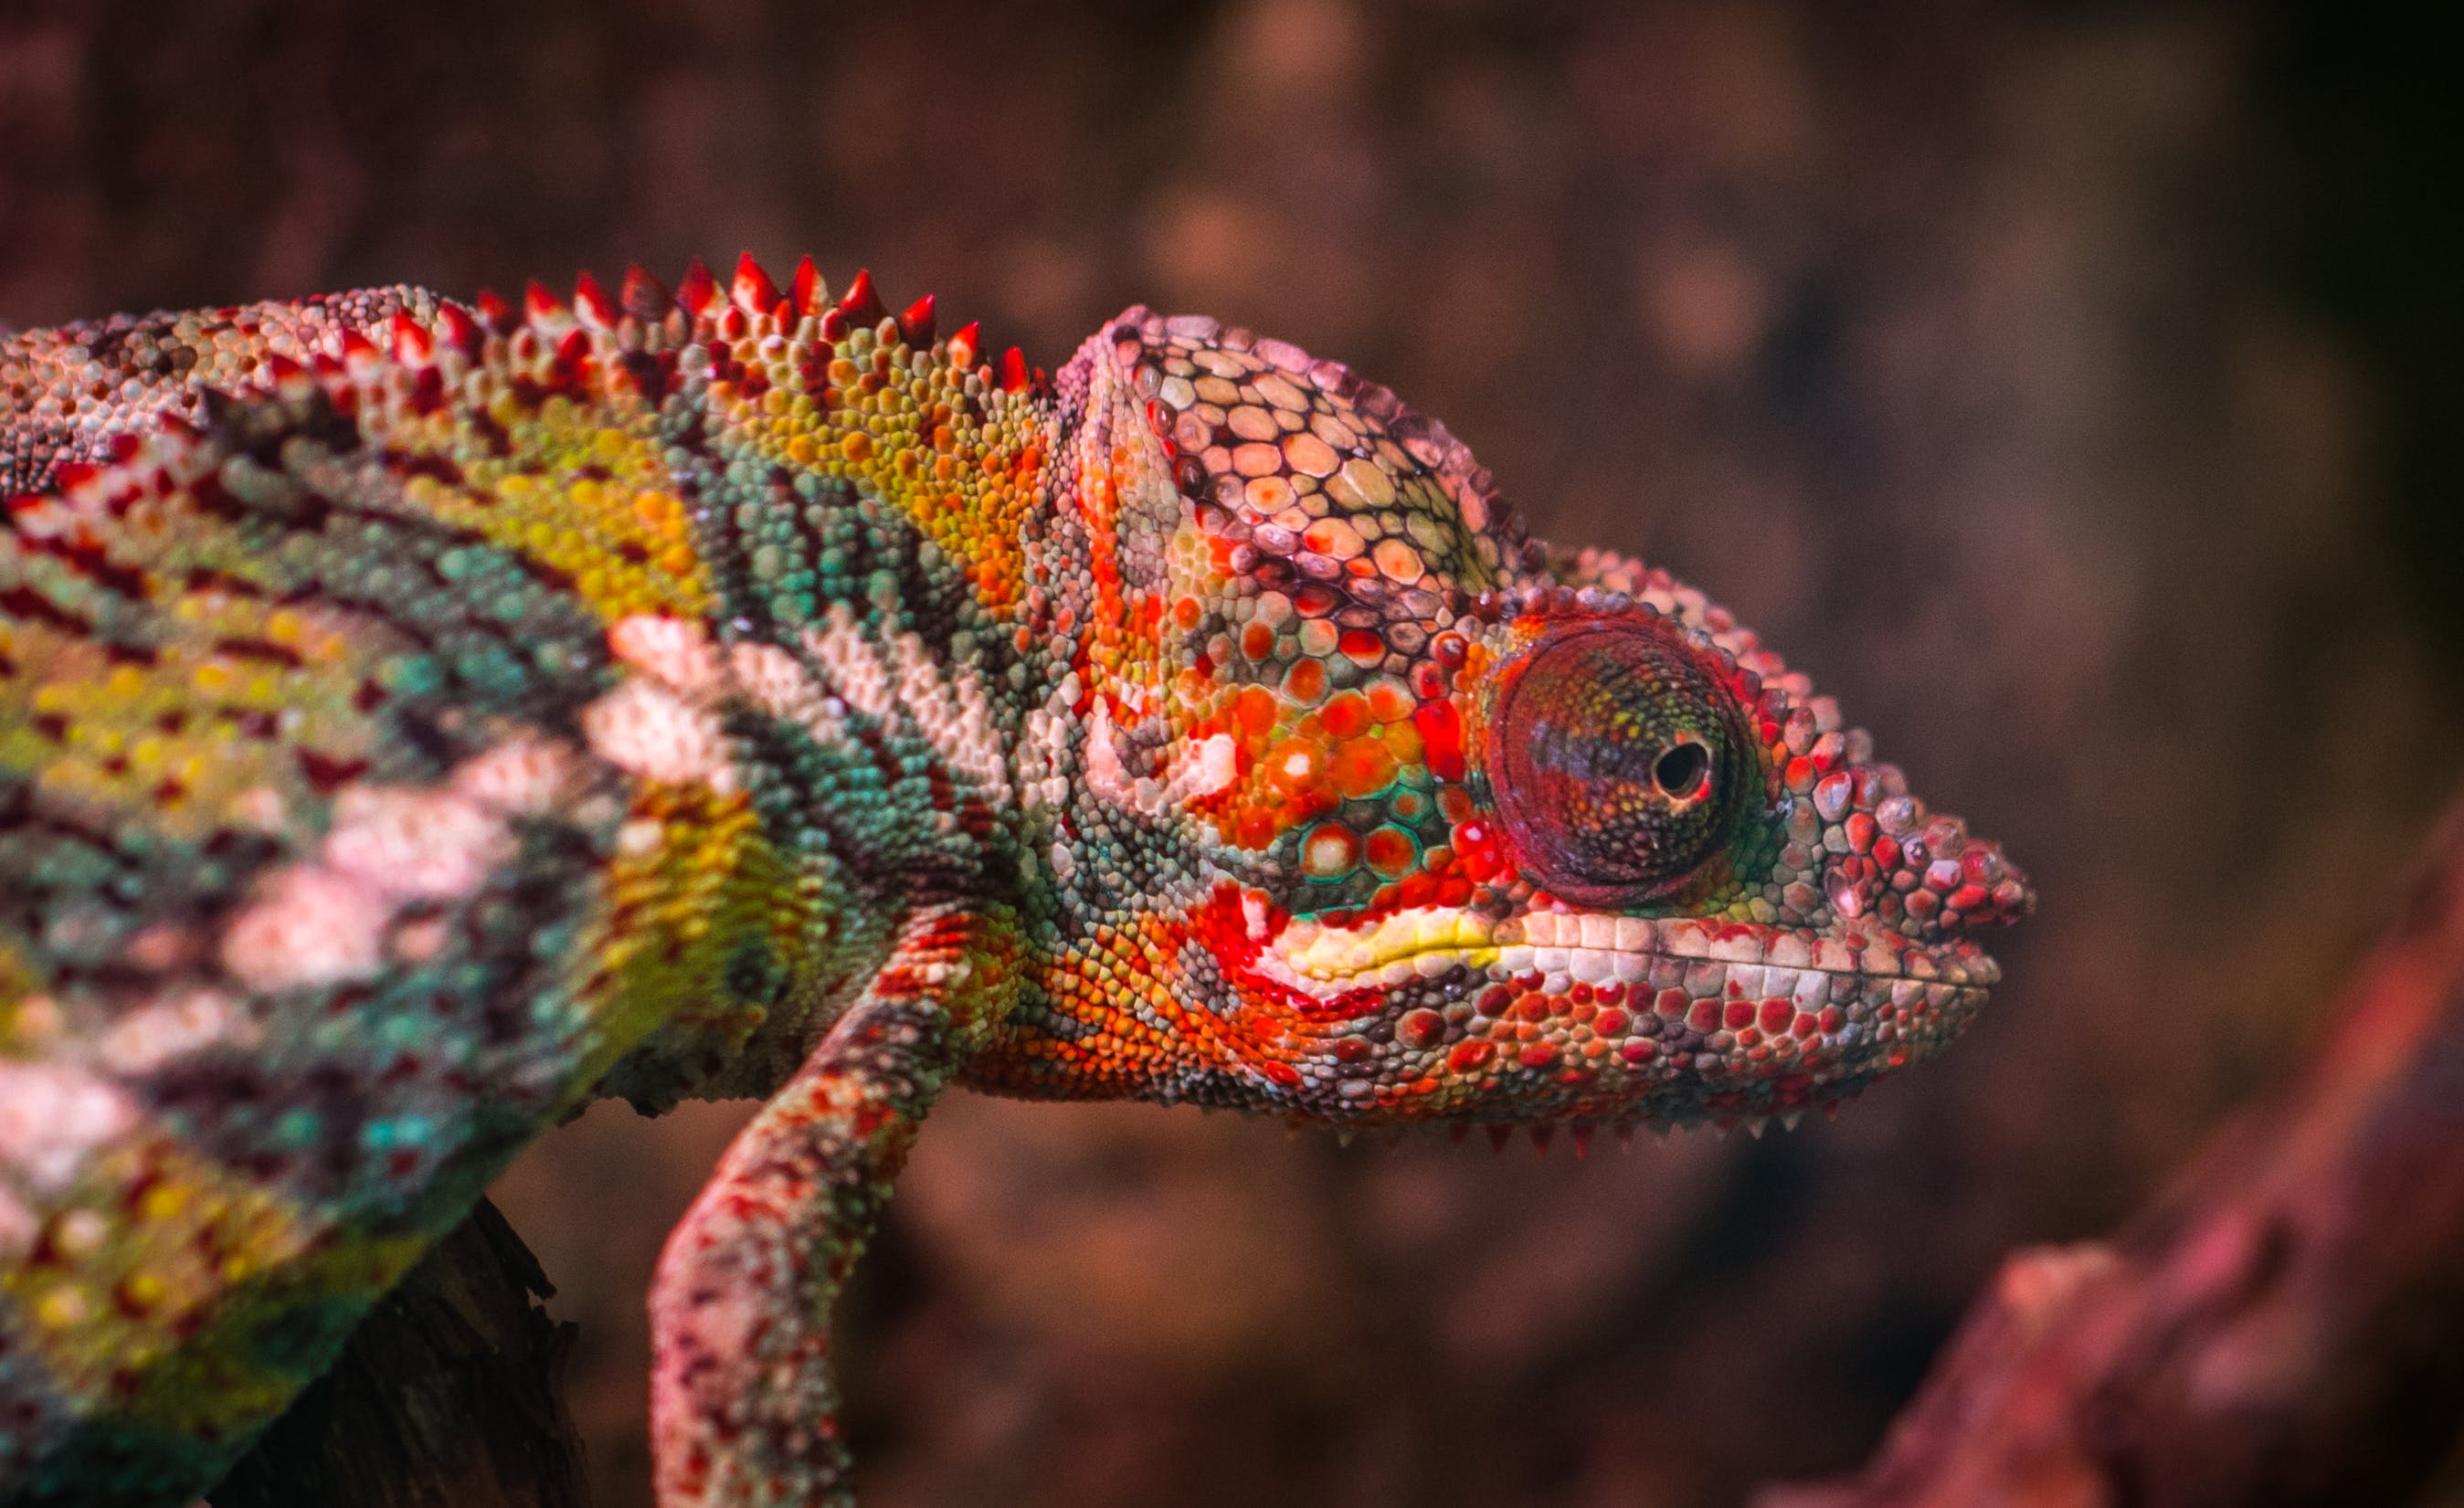 Red, White and Green Chameleon